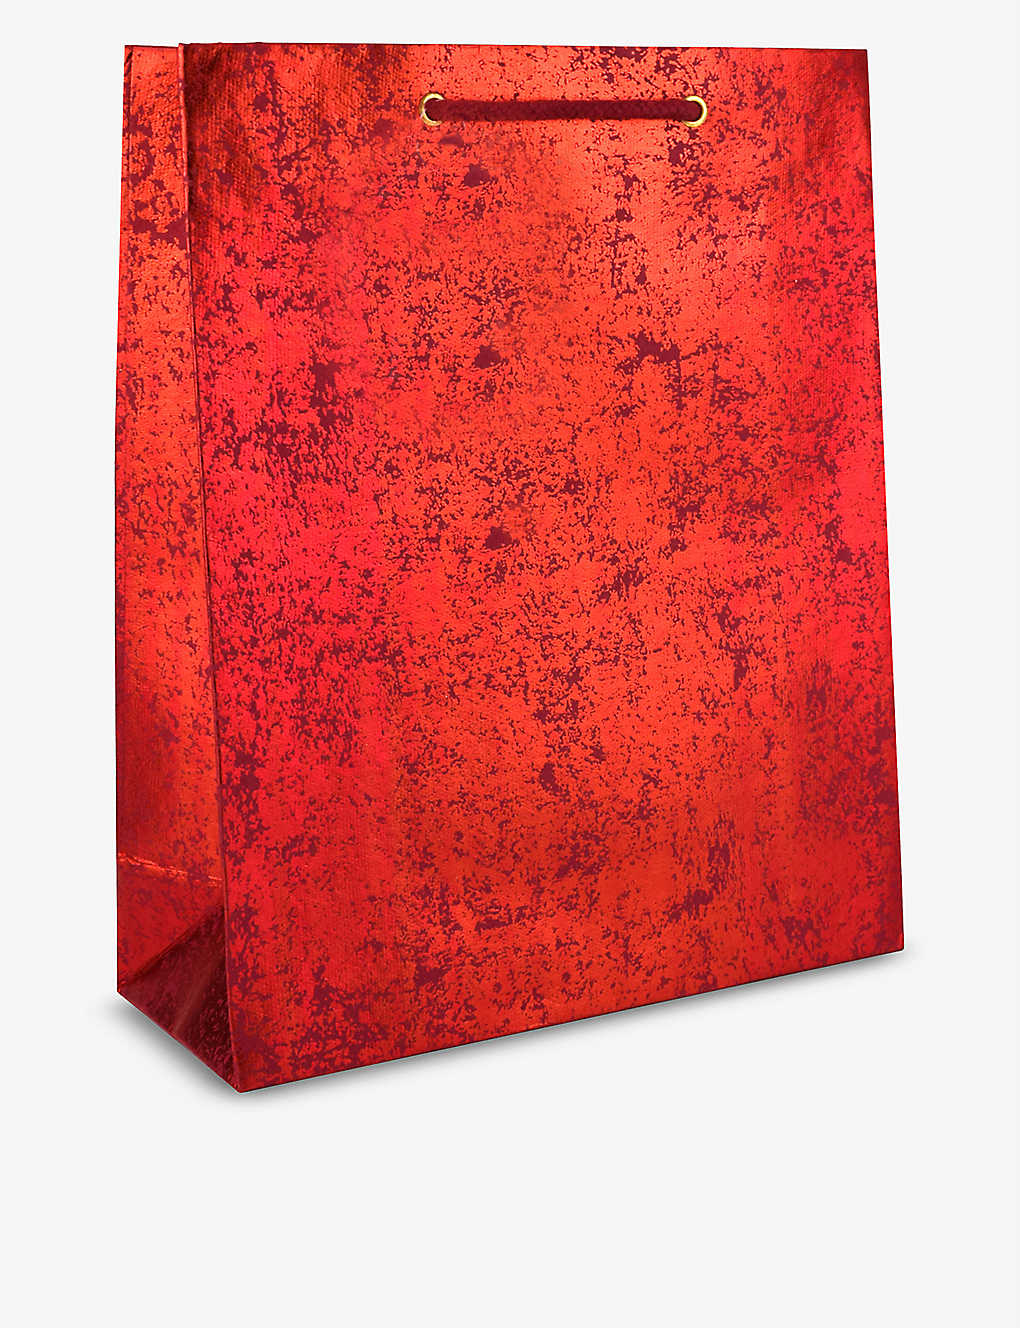 VIVID WRAP: Red Crush large recycled-cotton paper gift bag